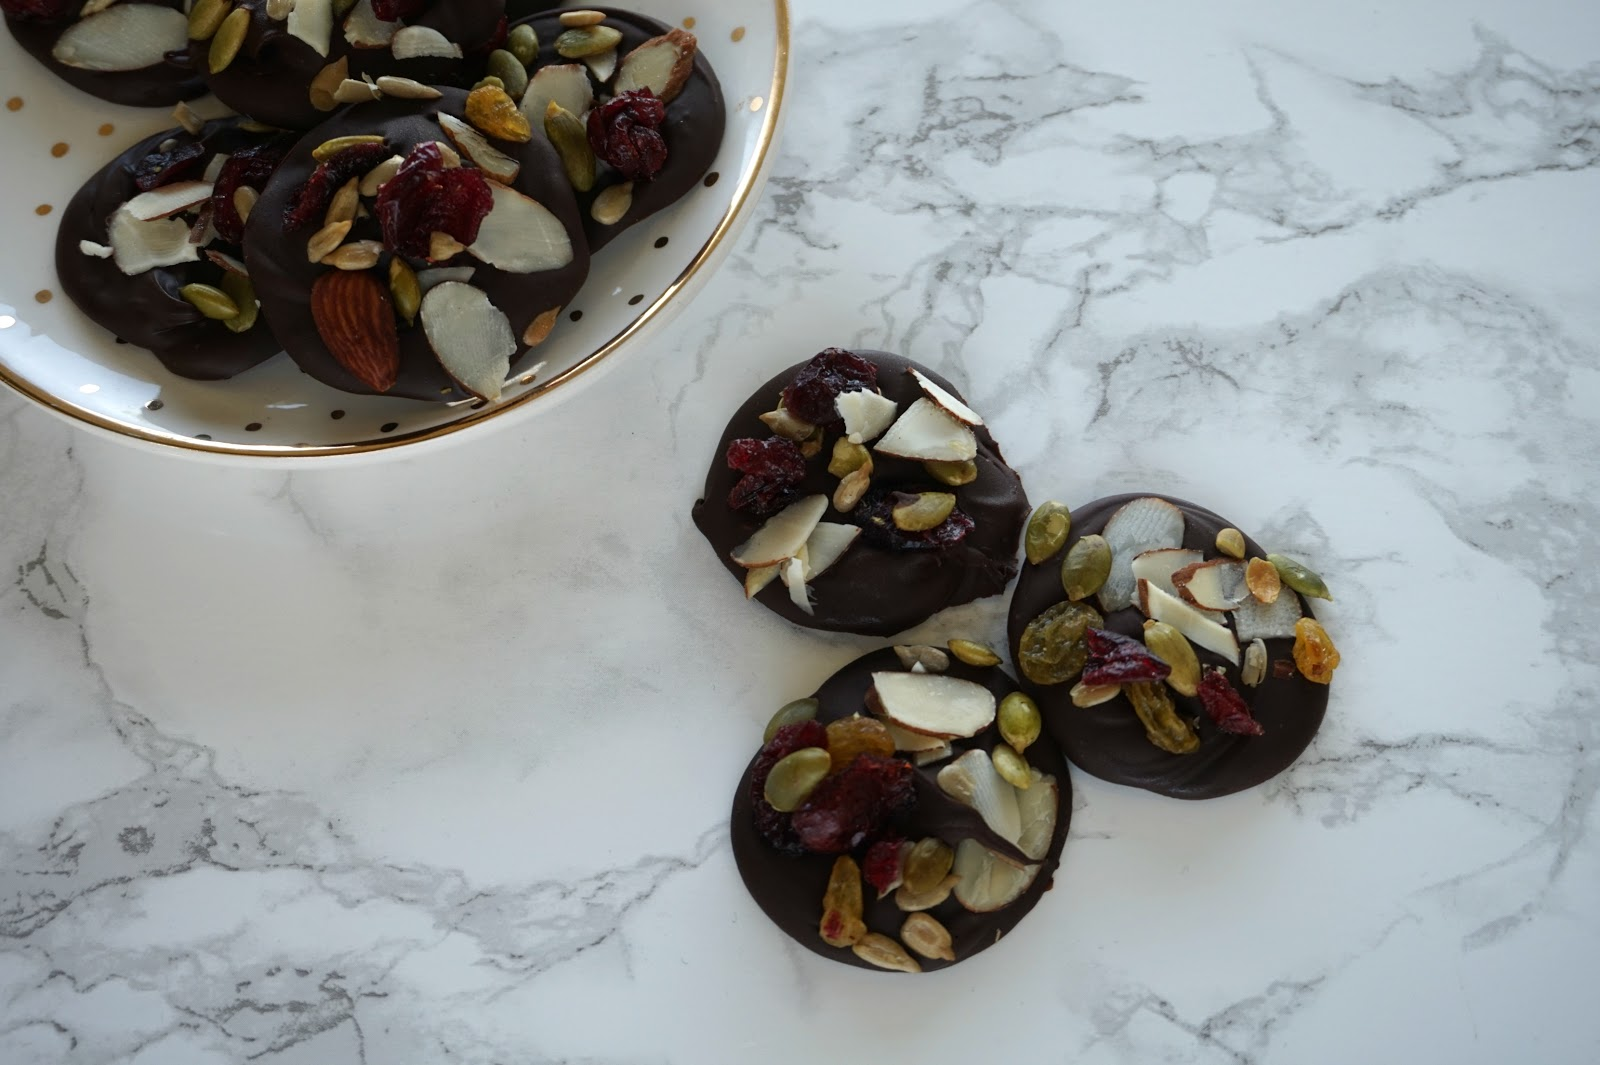 Easy & Healthy Dark Chocolate Bites // Dark Chocolate Bites With Nuts & Fruit // Easy & Healthy Sweet Treat | beautywithlily.com